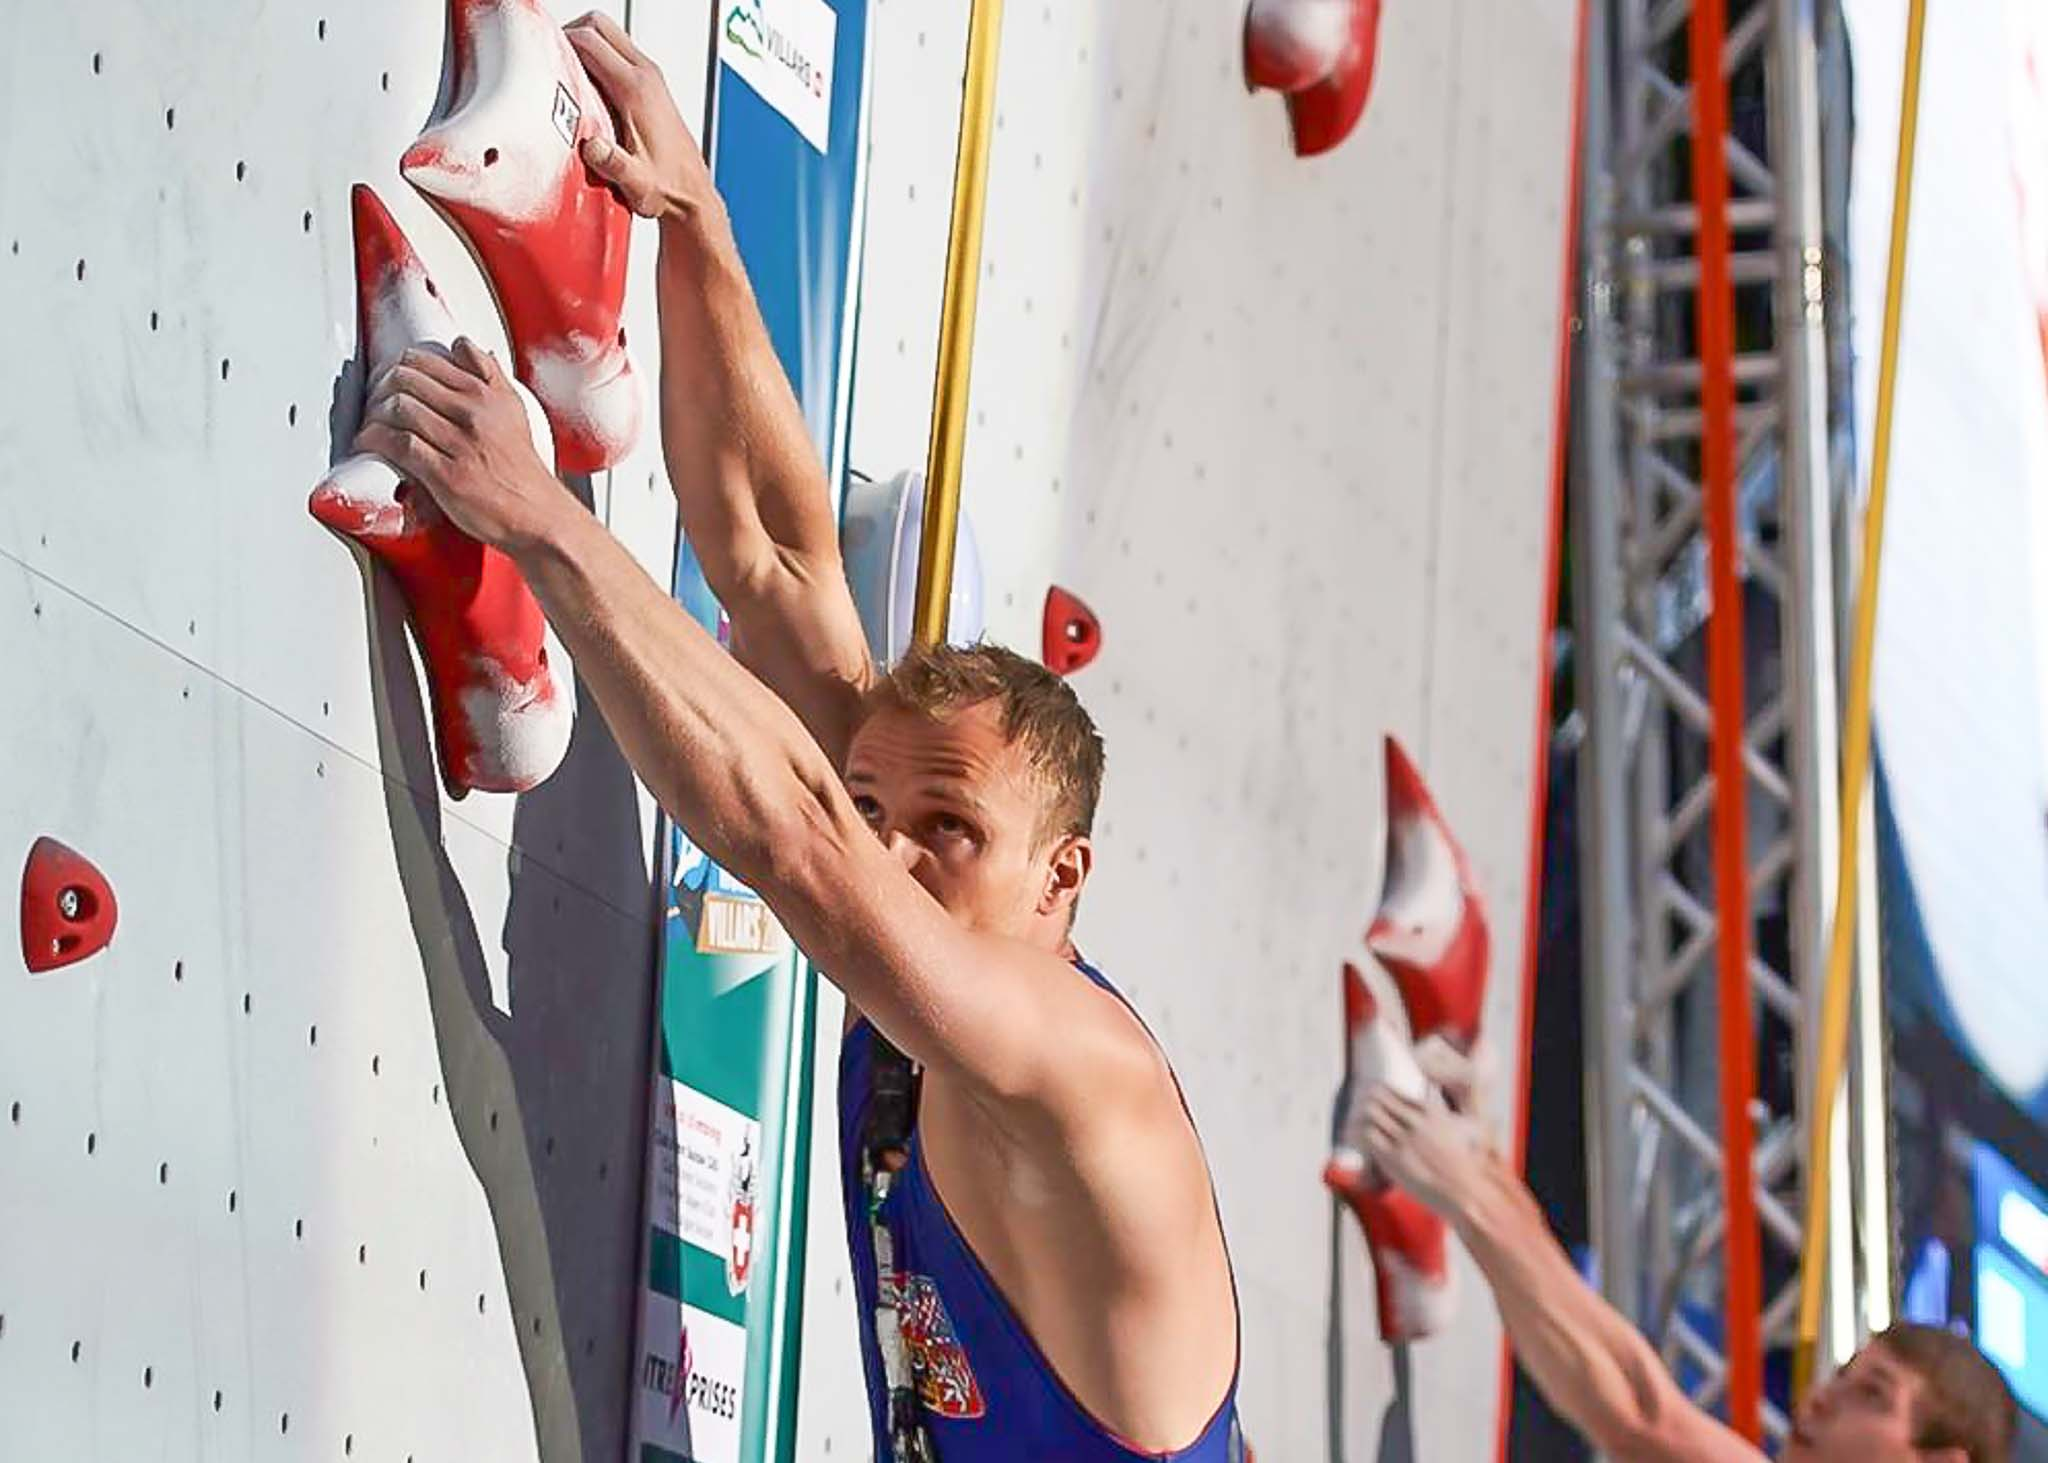 libor-hroza-speed-climber-at-start-perfect-descent-athlete